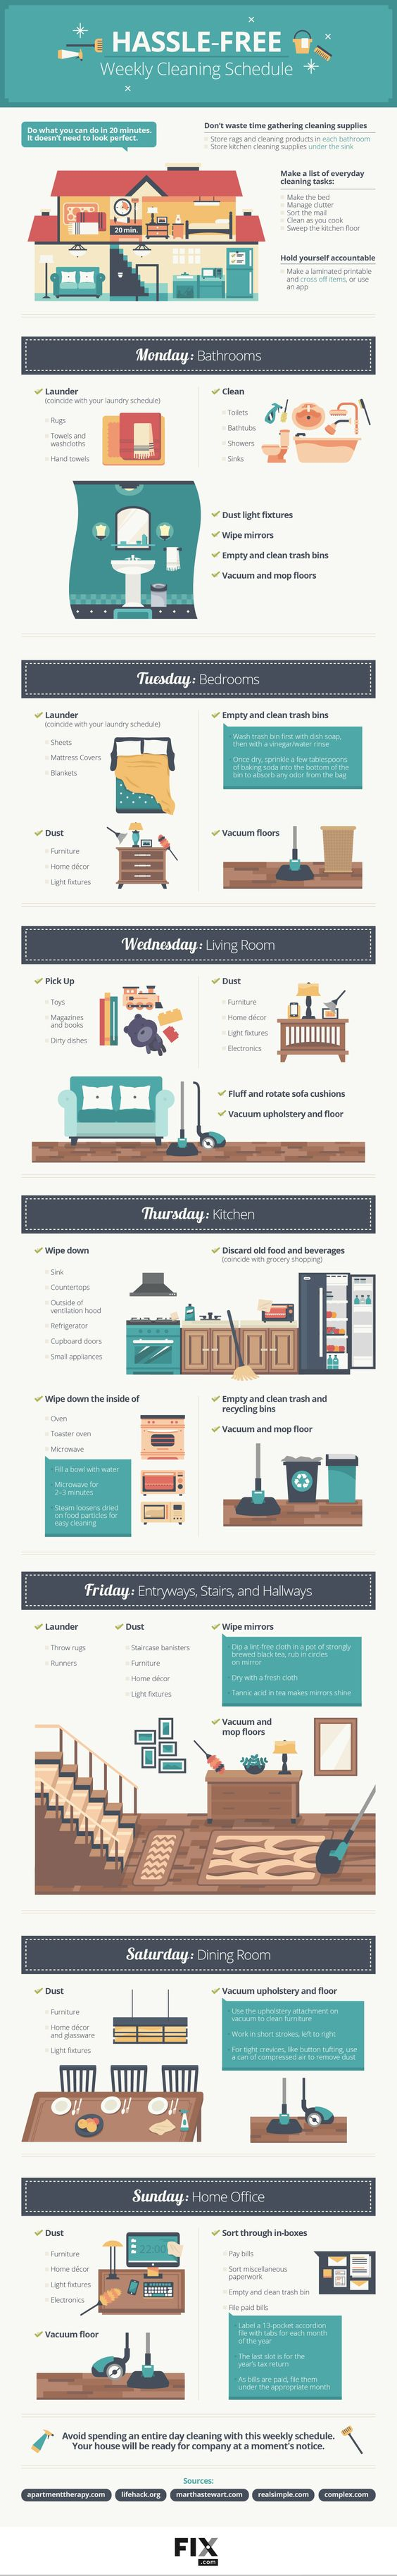 Download this weekly cleaning schedule for personal use only thank - A Day By Day Guide To Keeping Your Home Spotless And Your Mind Sane Cleaning Schedules Weekly Schedule And Cleaning